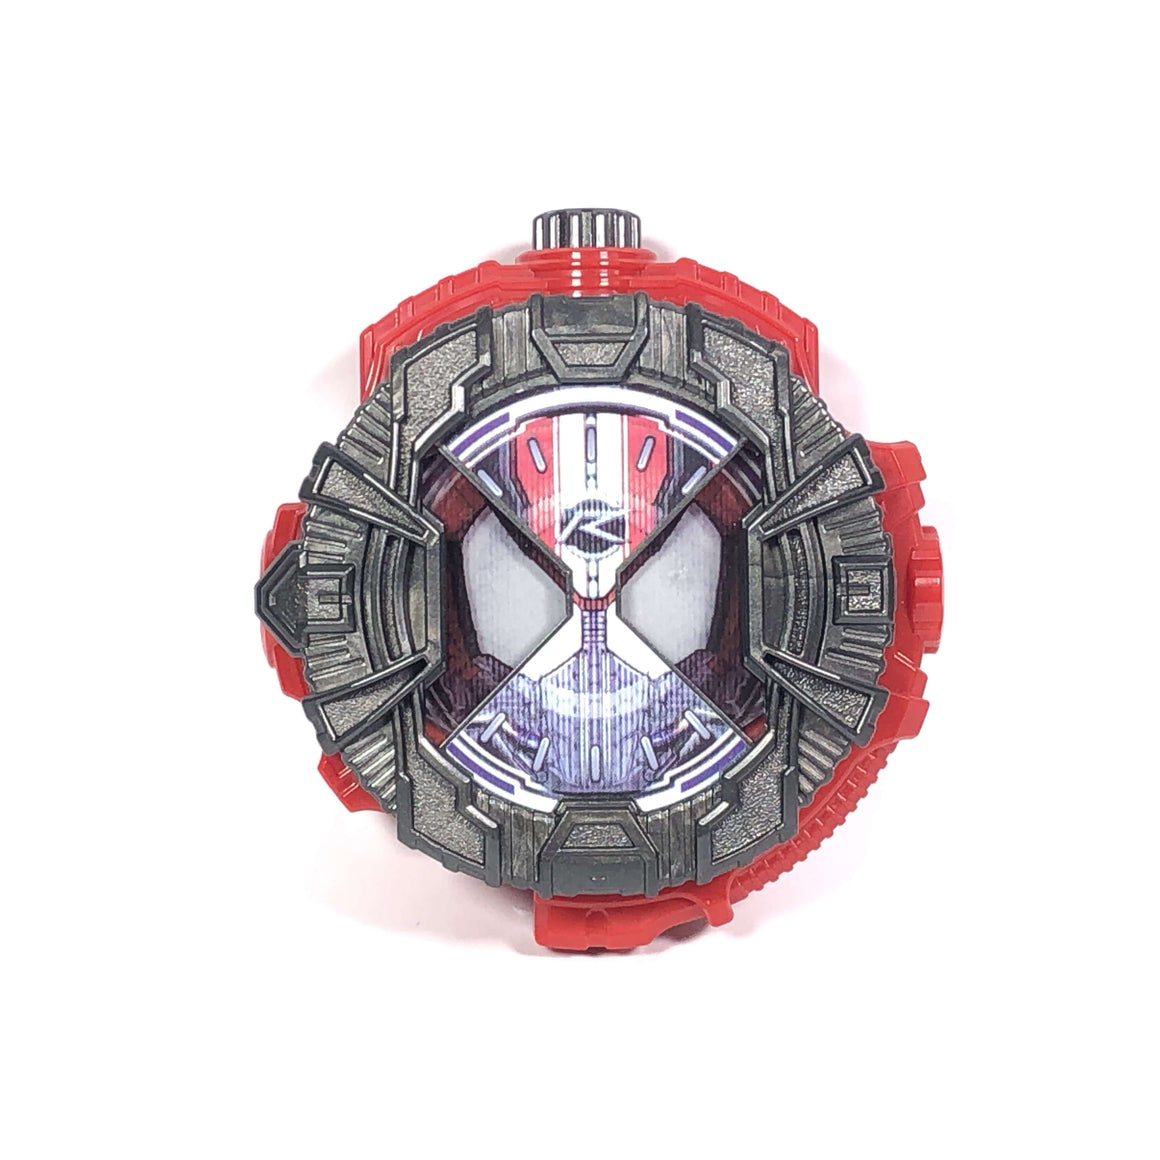 CSTOYS INTERNATIONAL:3000000419663[LOOSE] Kamen Rider Zi-O:  Watch